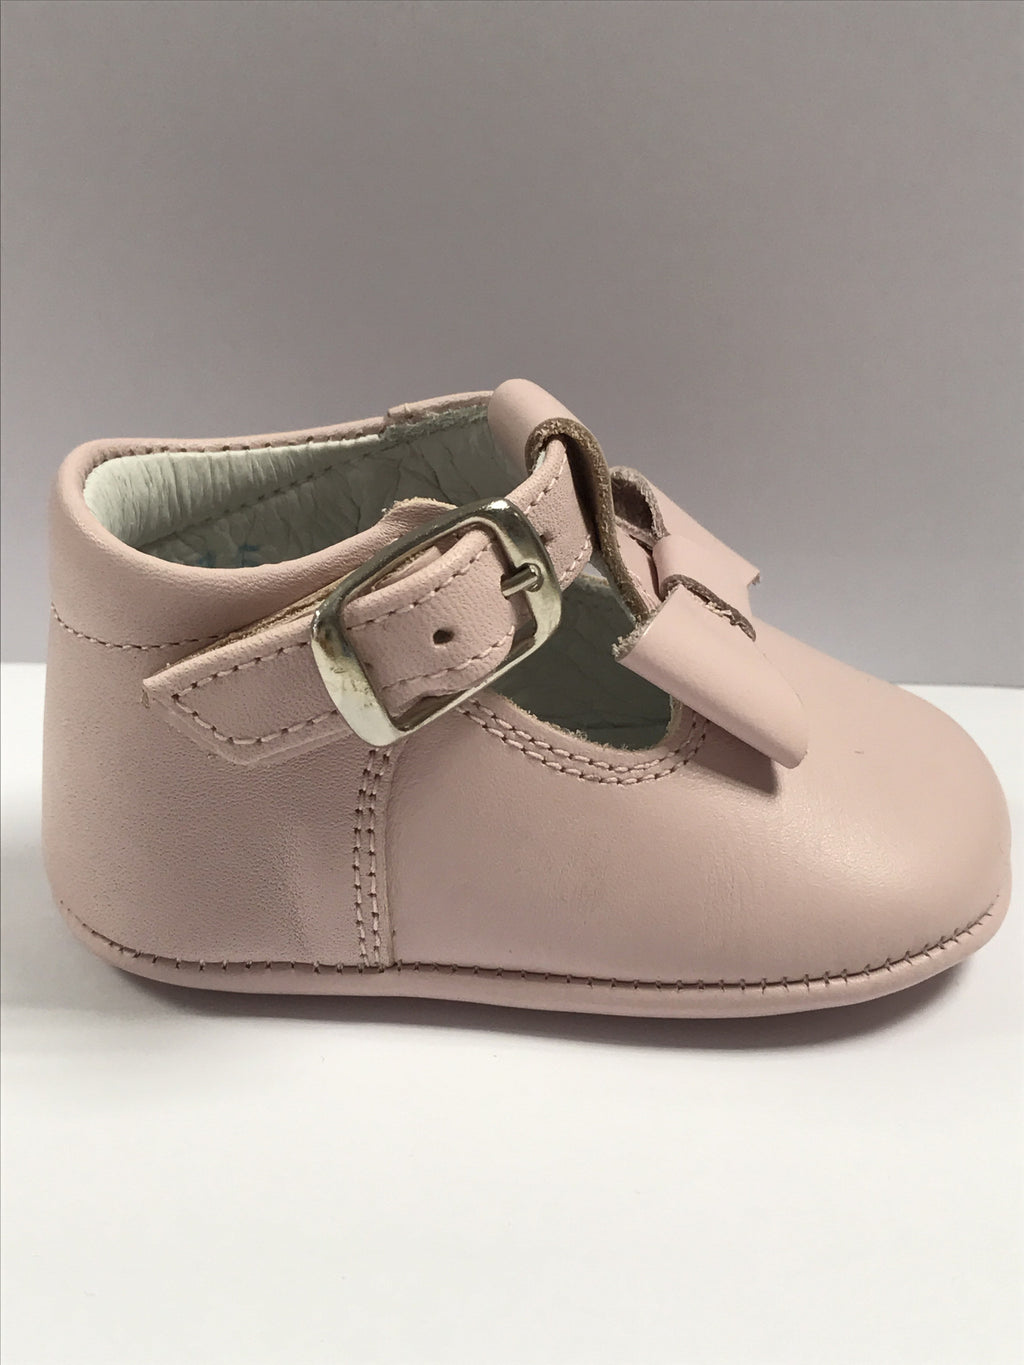 Andanines Pale Pink Leather Bow Pram Shoe - Liquorice Kids